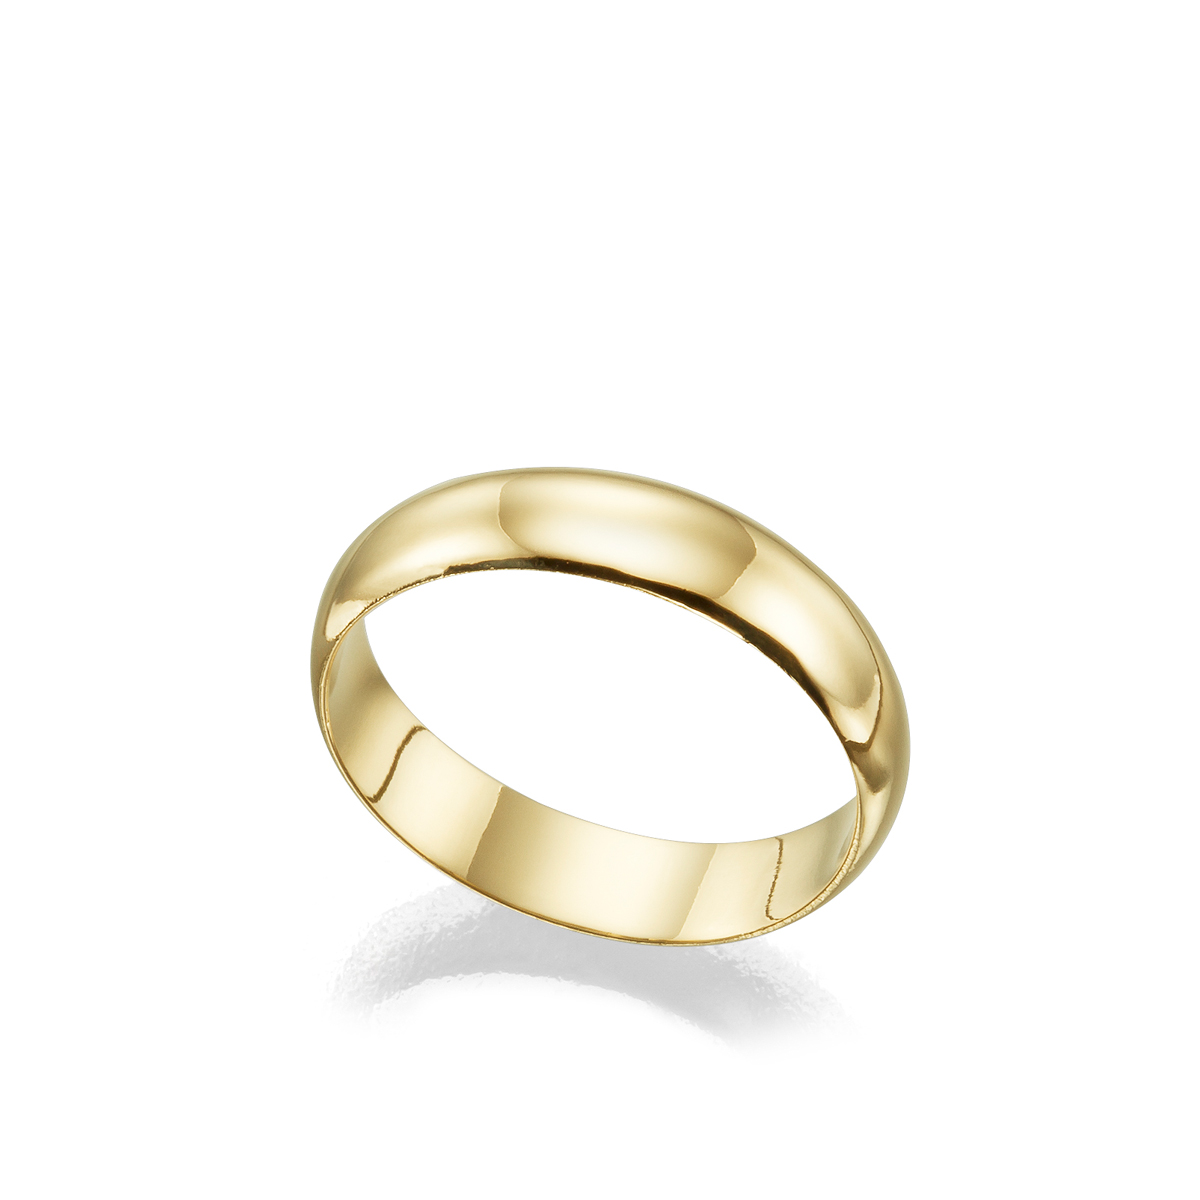 5 mm wide straight profile gold ring